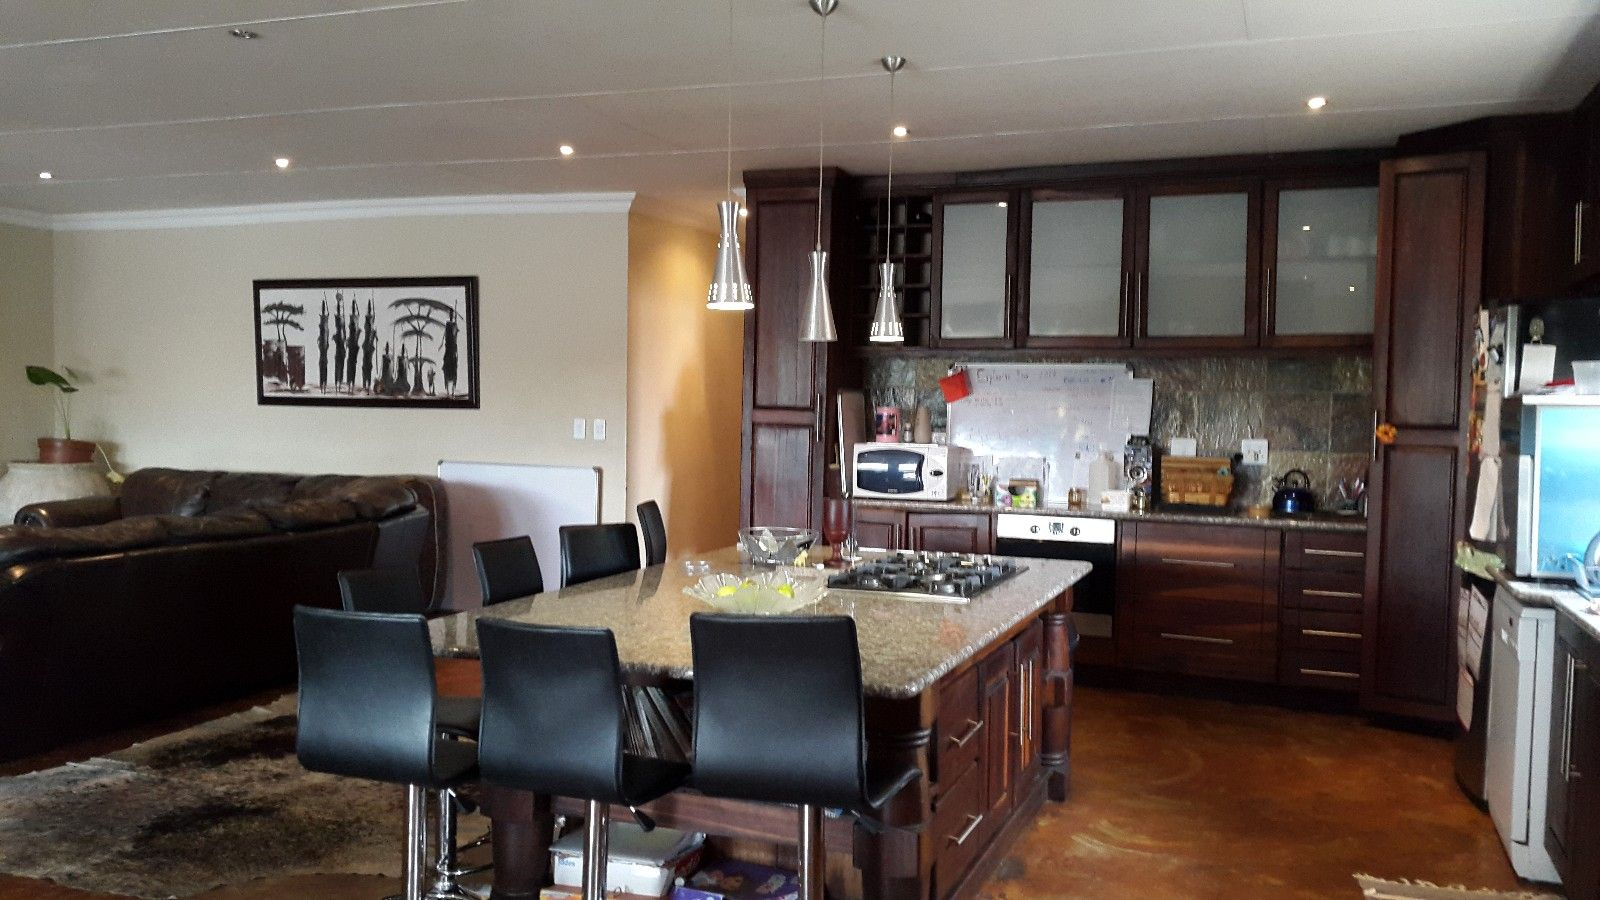 Potchefstroom Central property for sale. Ref No: 13451884. Picture no 8